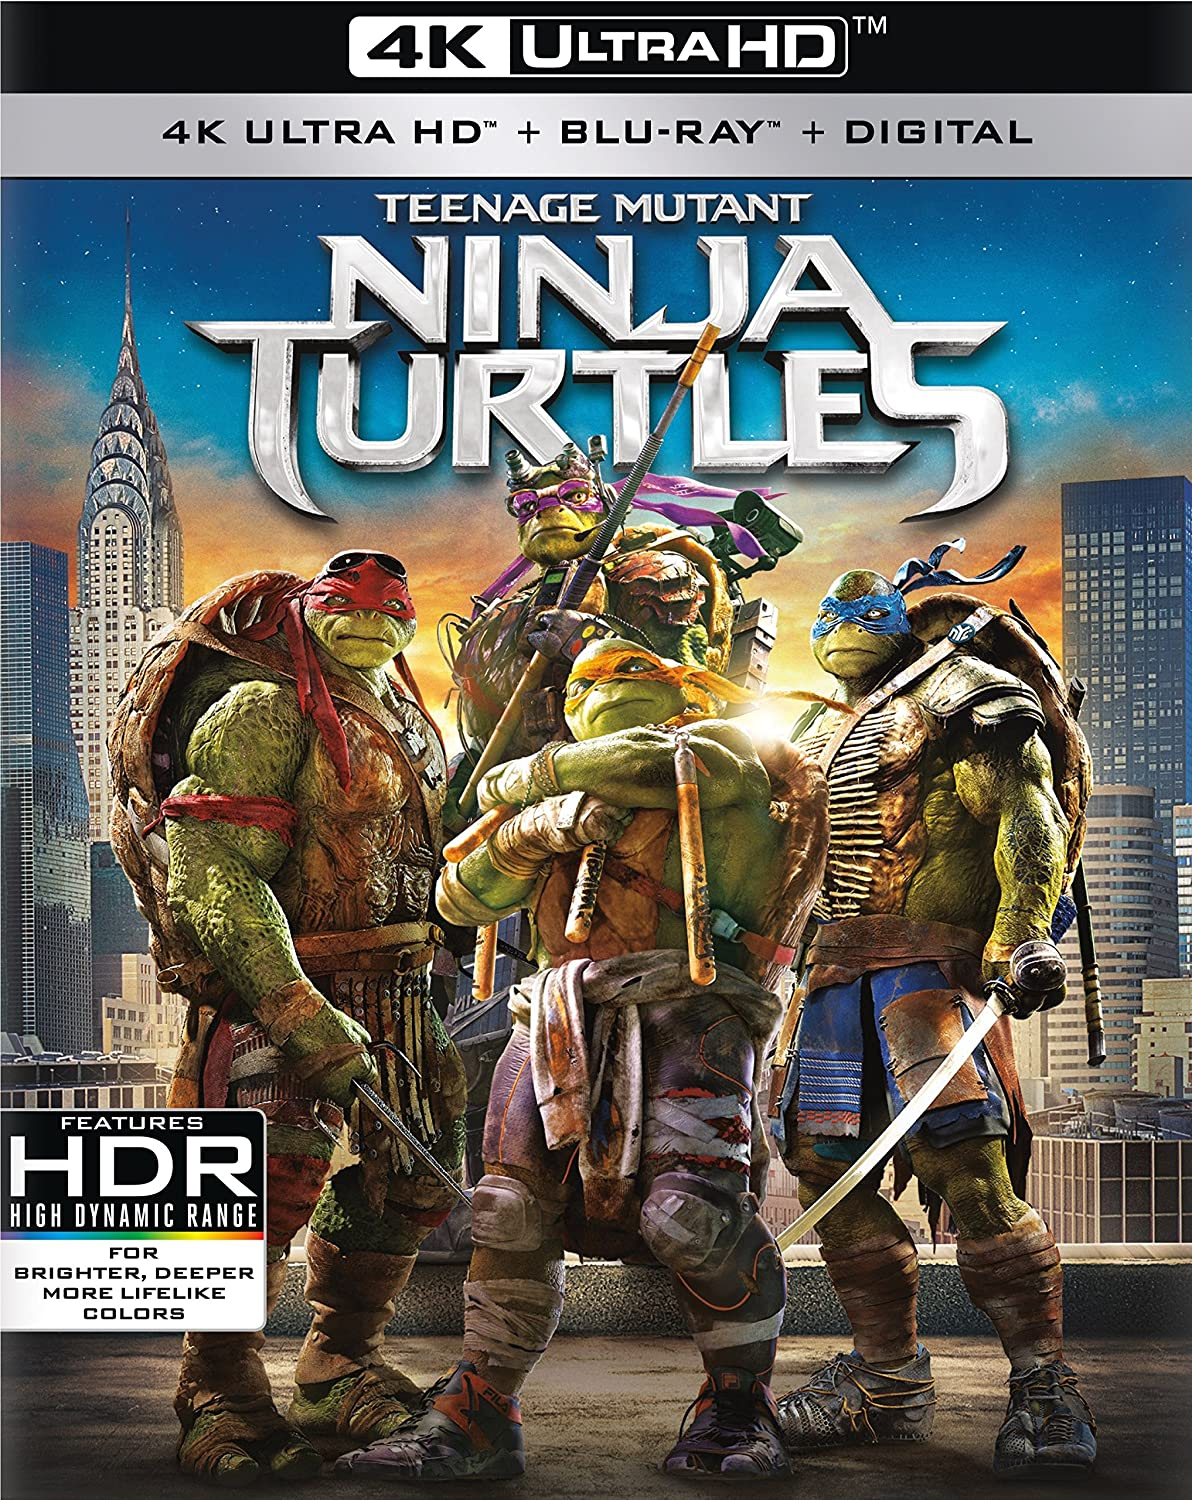 Amazon.com: Teenage Mutant Ninja Turtles (2014) [Blu-ray ...